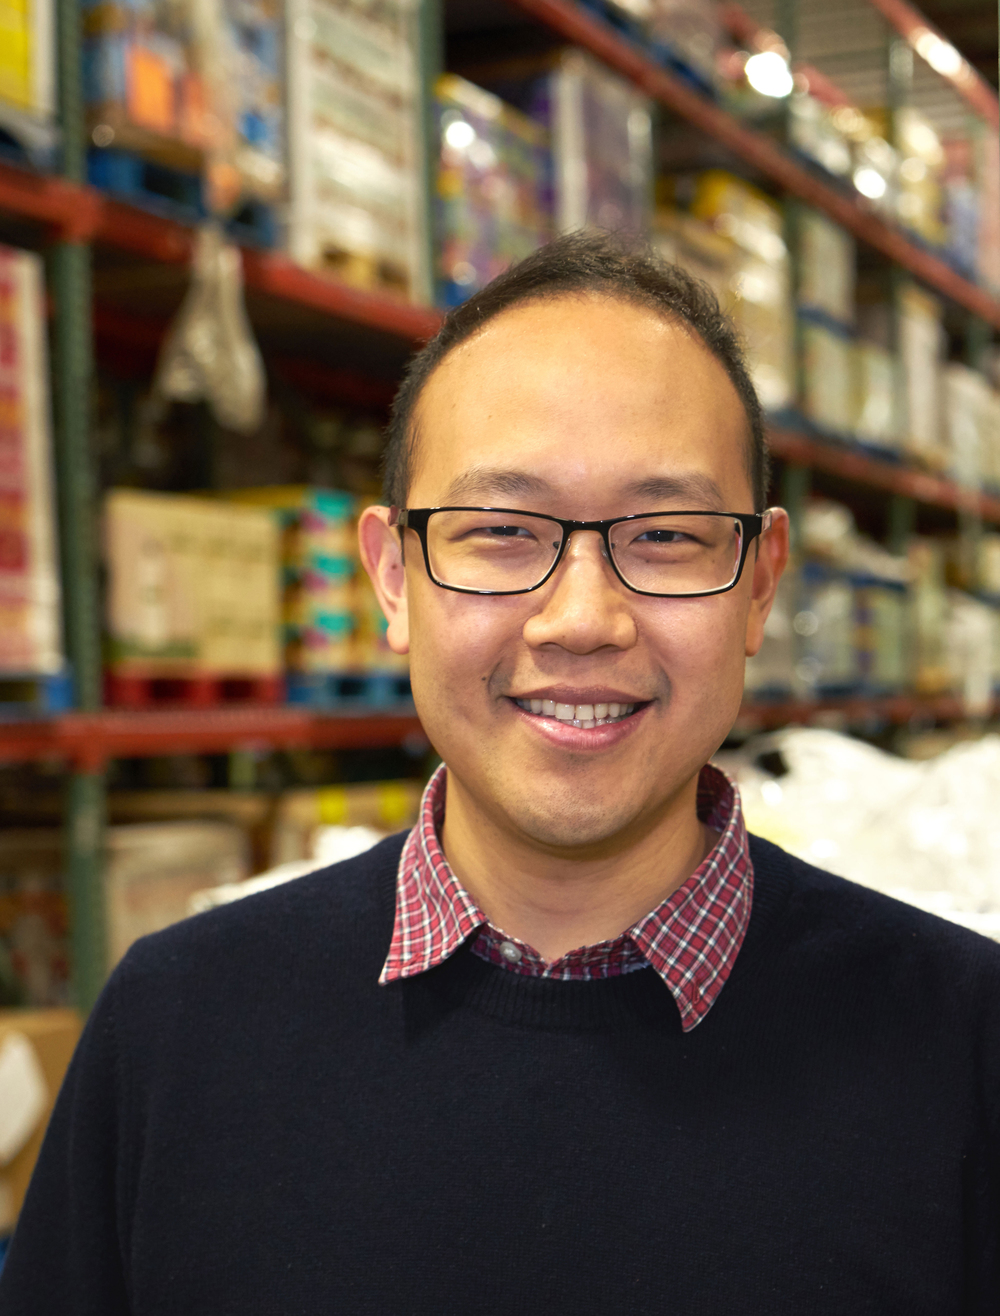 Chieh Huang, CEO, Boxed